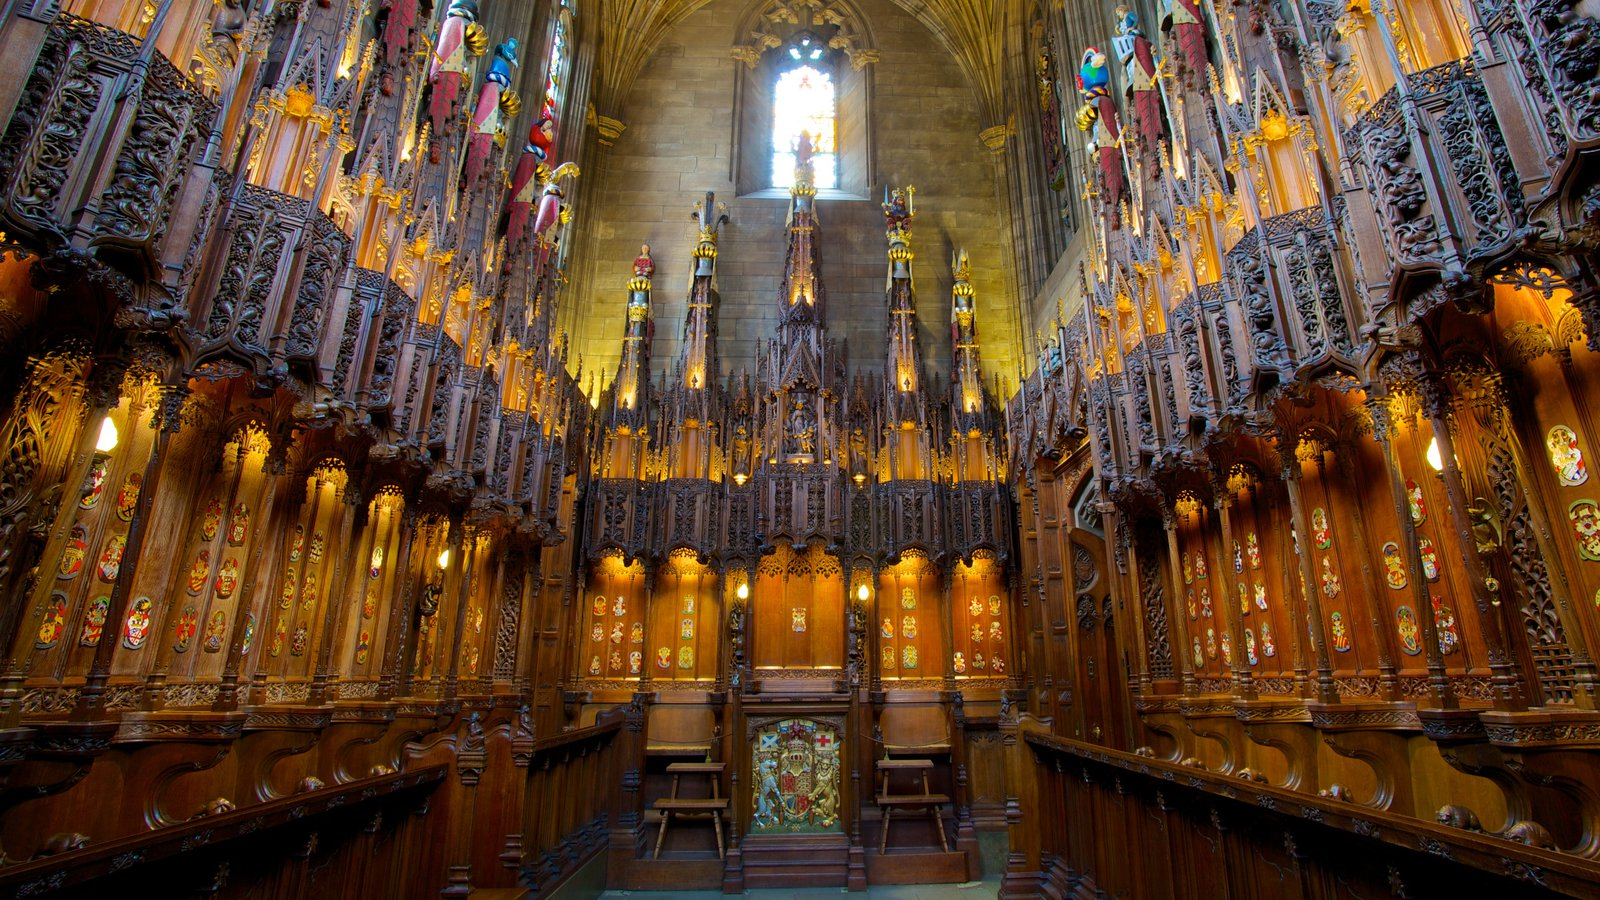 St. Giles\' Cathedral showing a church or cathedral, heritage architecture and interior views